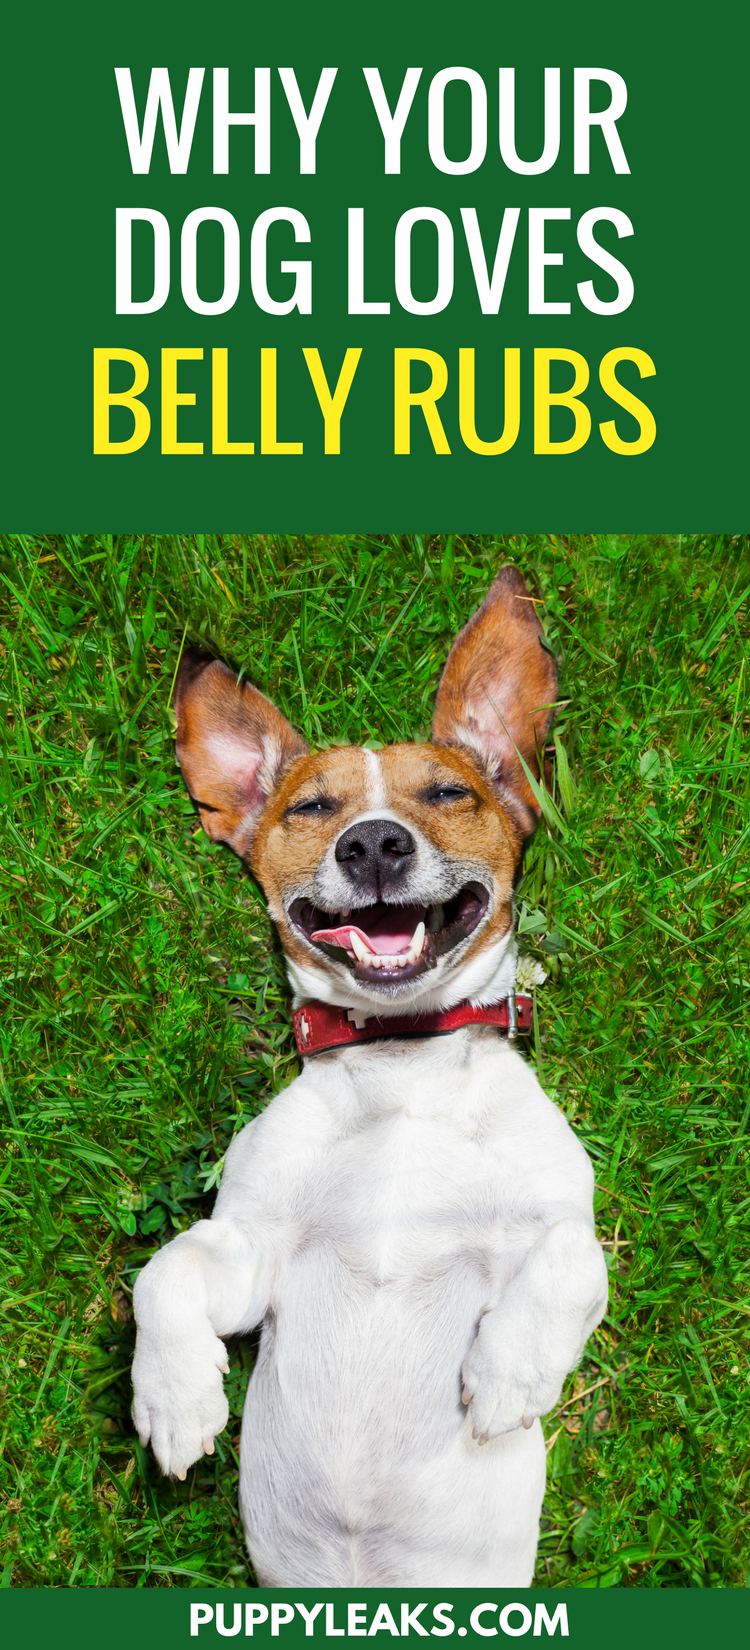 Why do dogs love belly rubs your dog dogs and dog